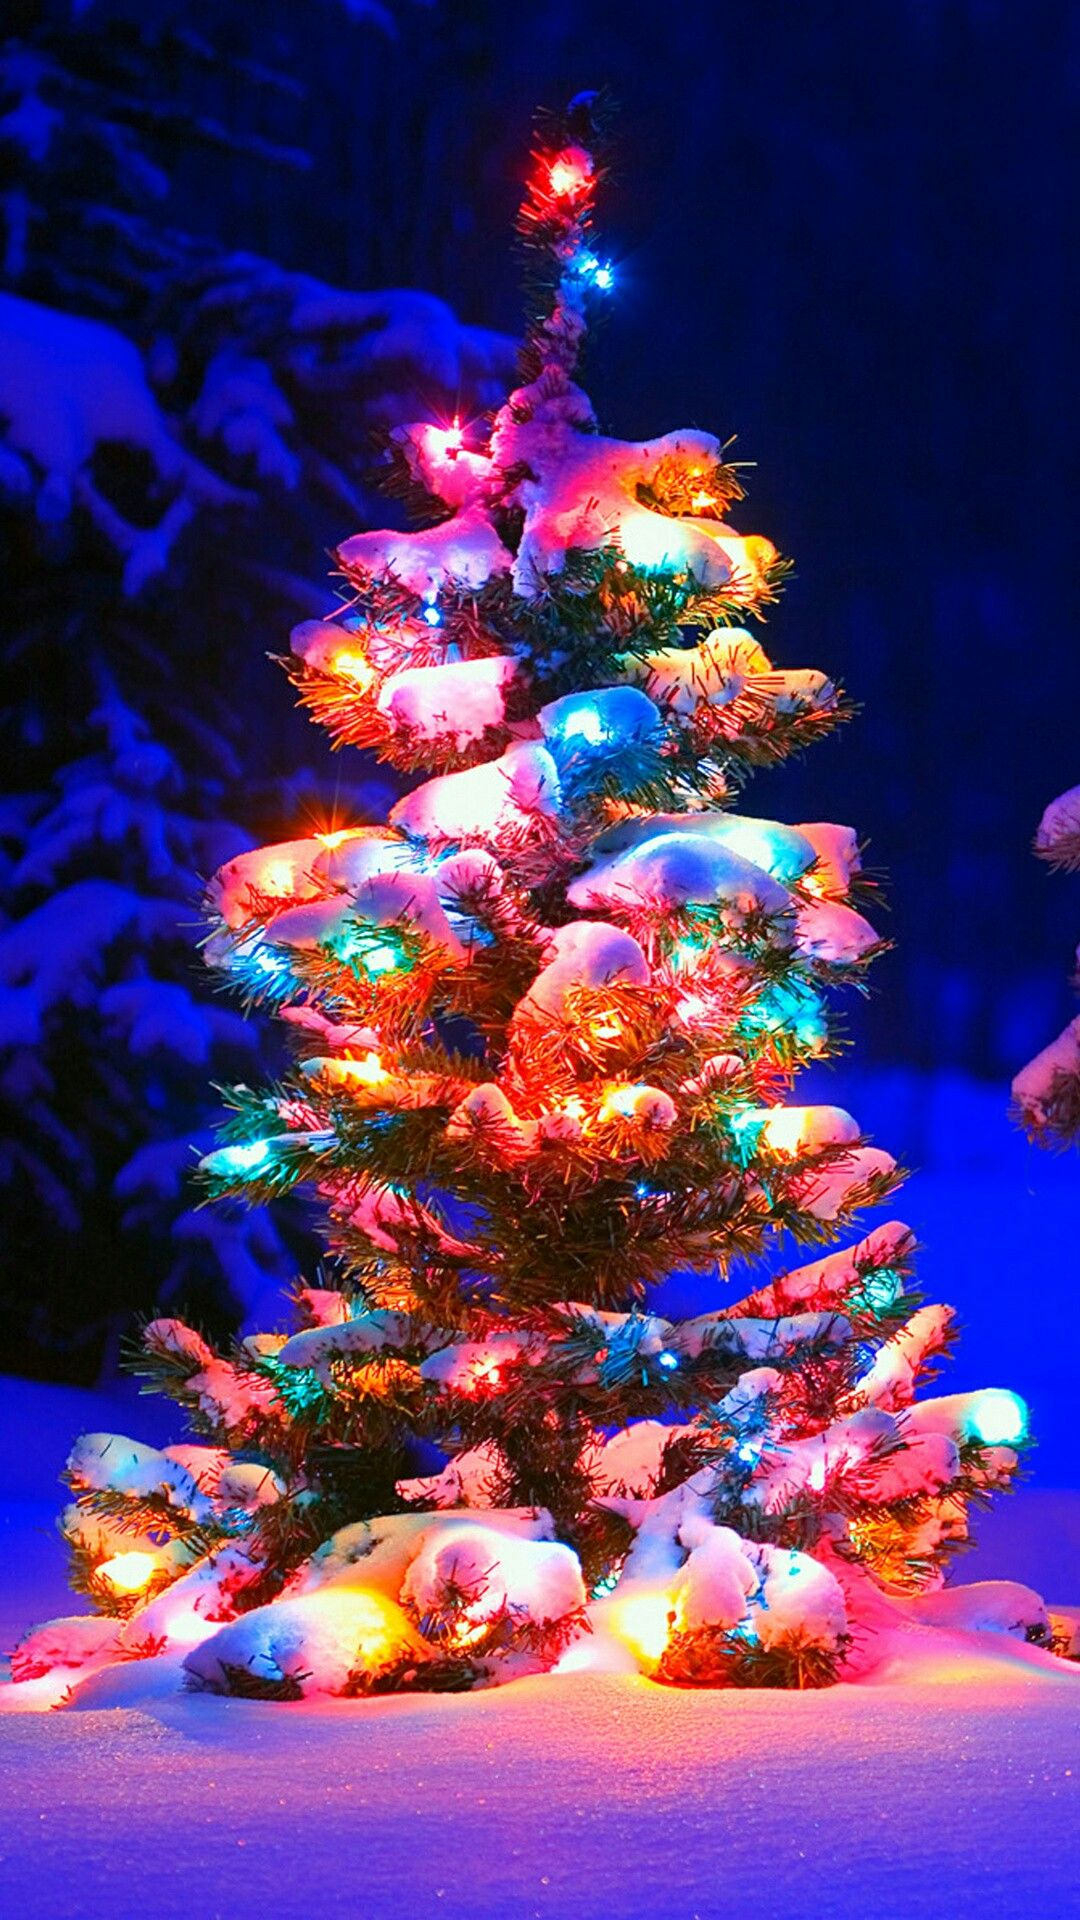 Christmas Christmas pictures Pinterest